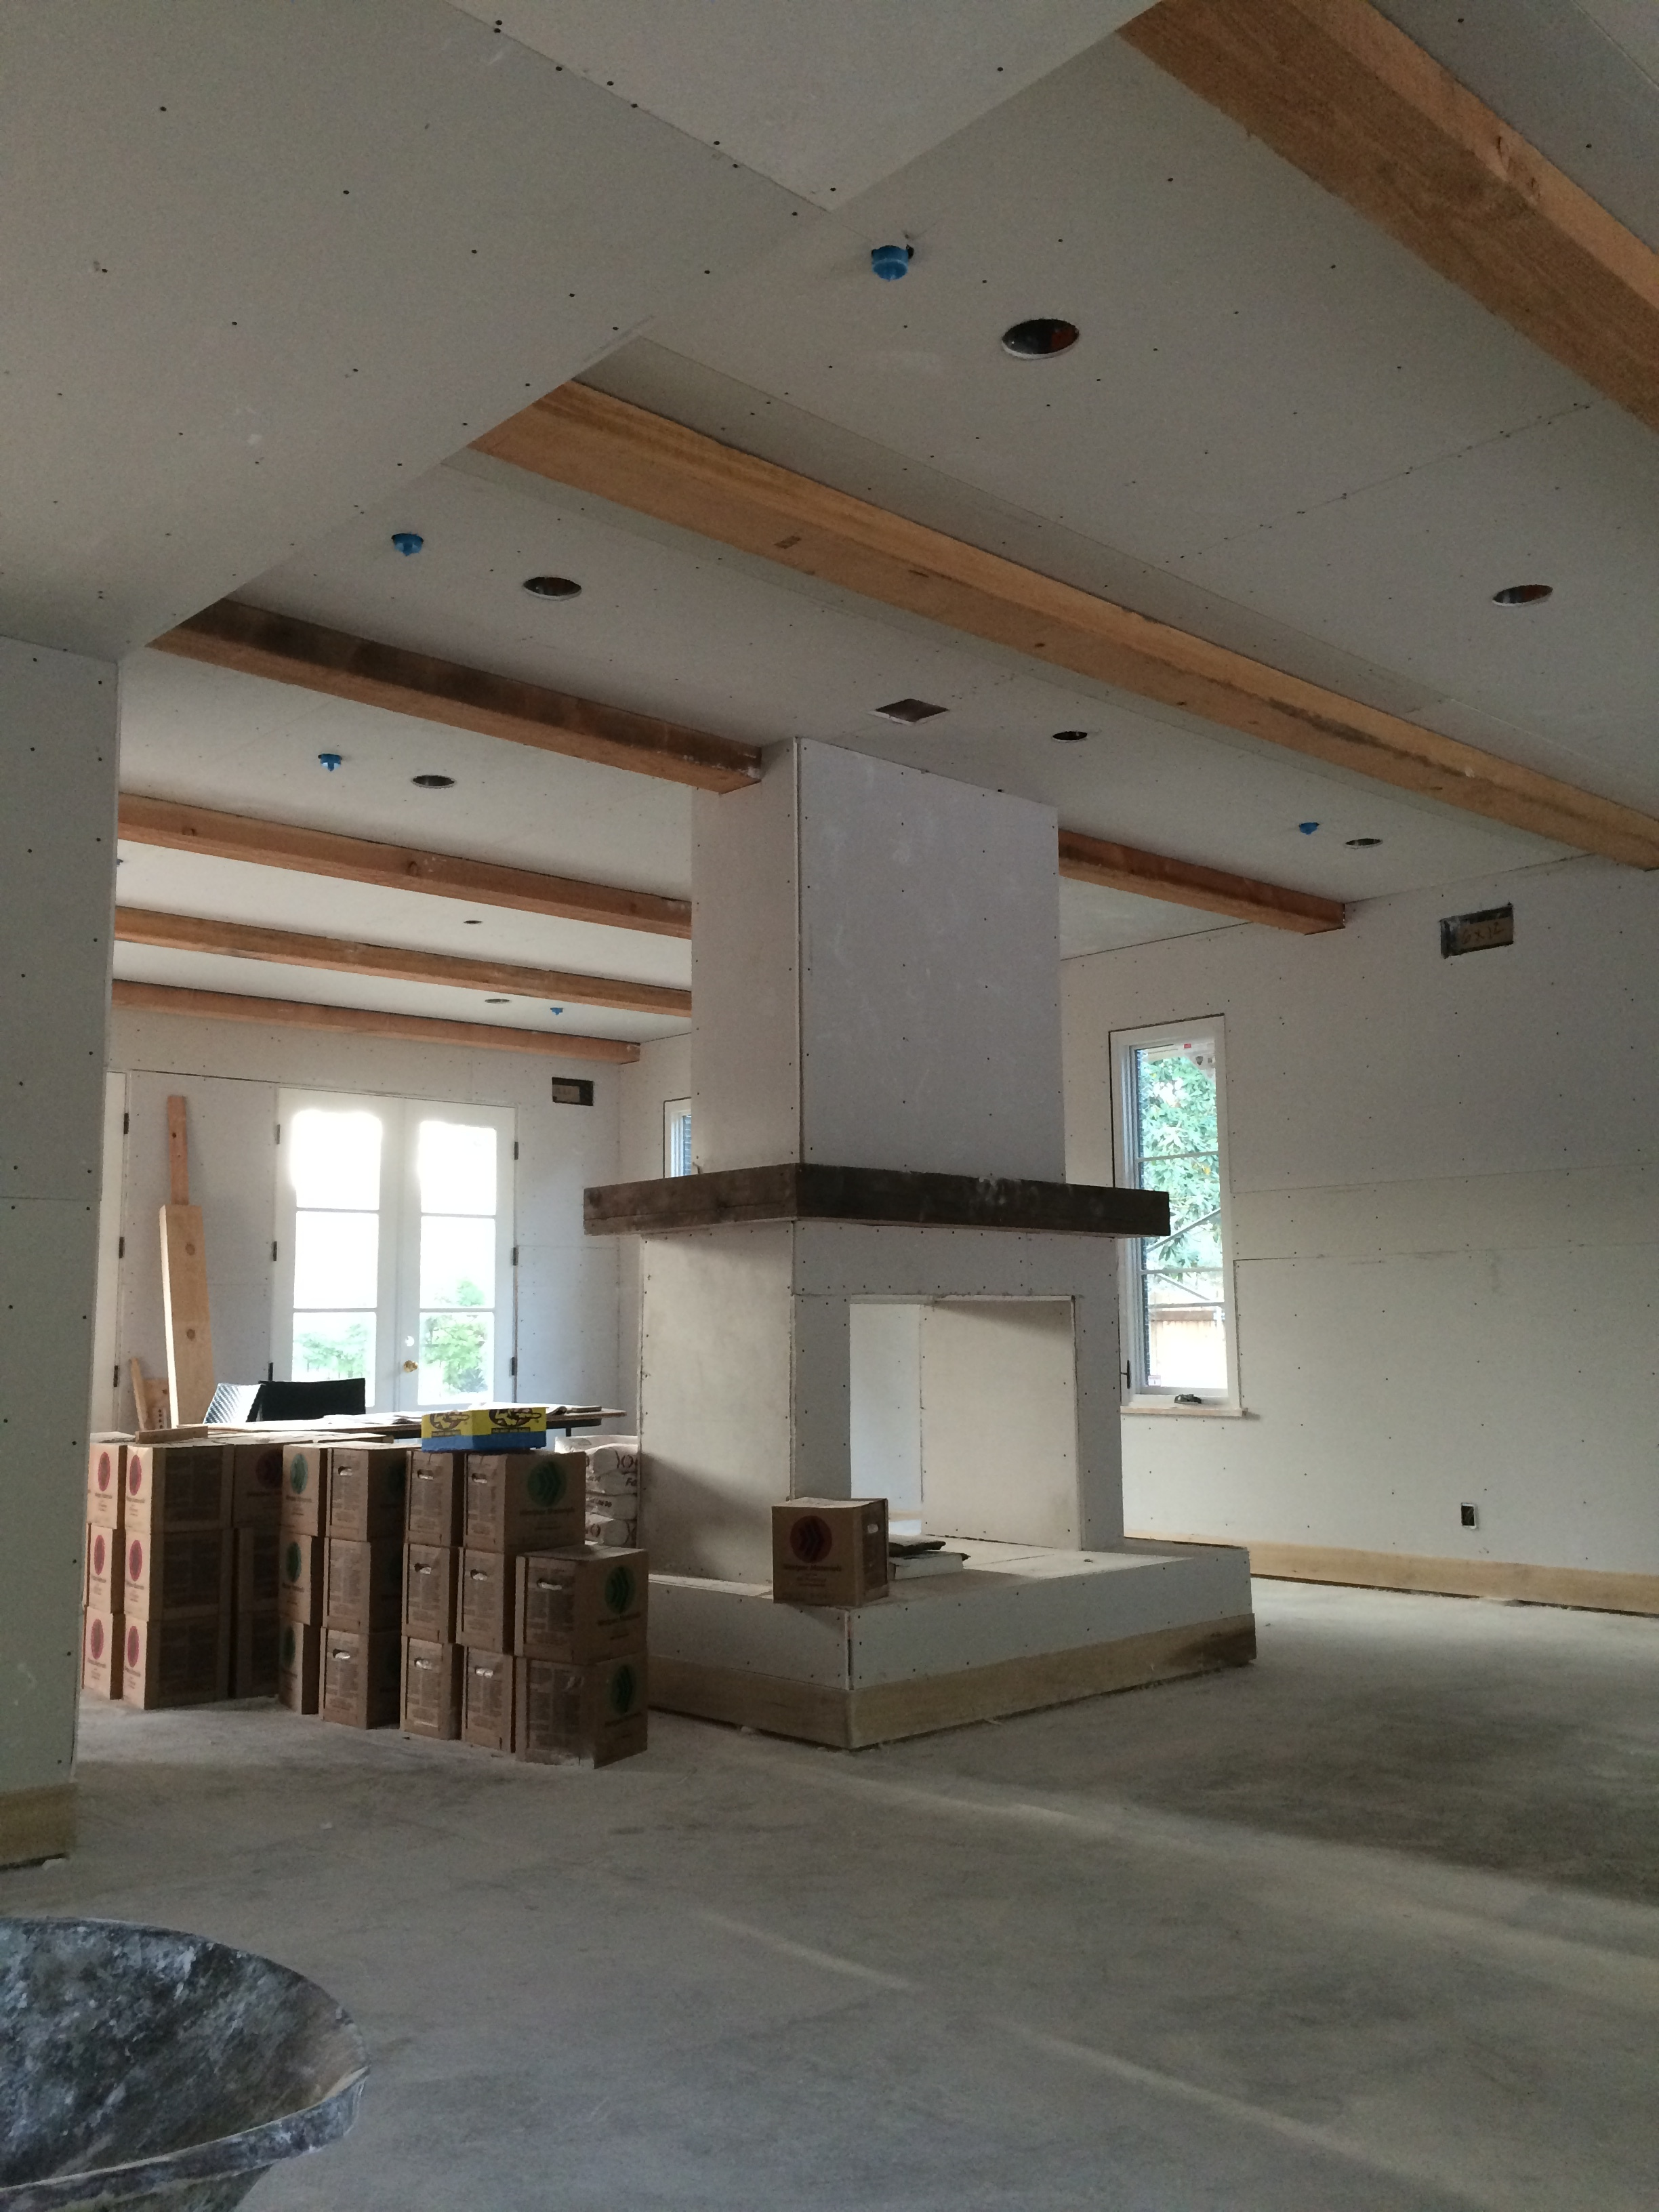 Brotherly Construction Pictures 218.JPG